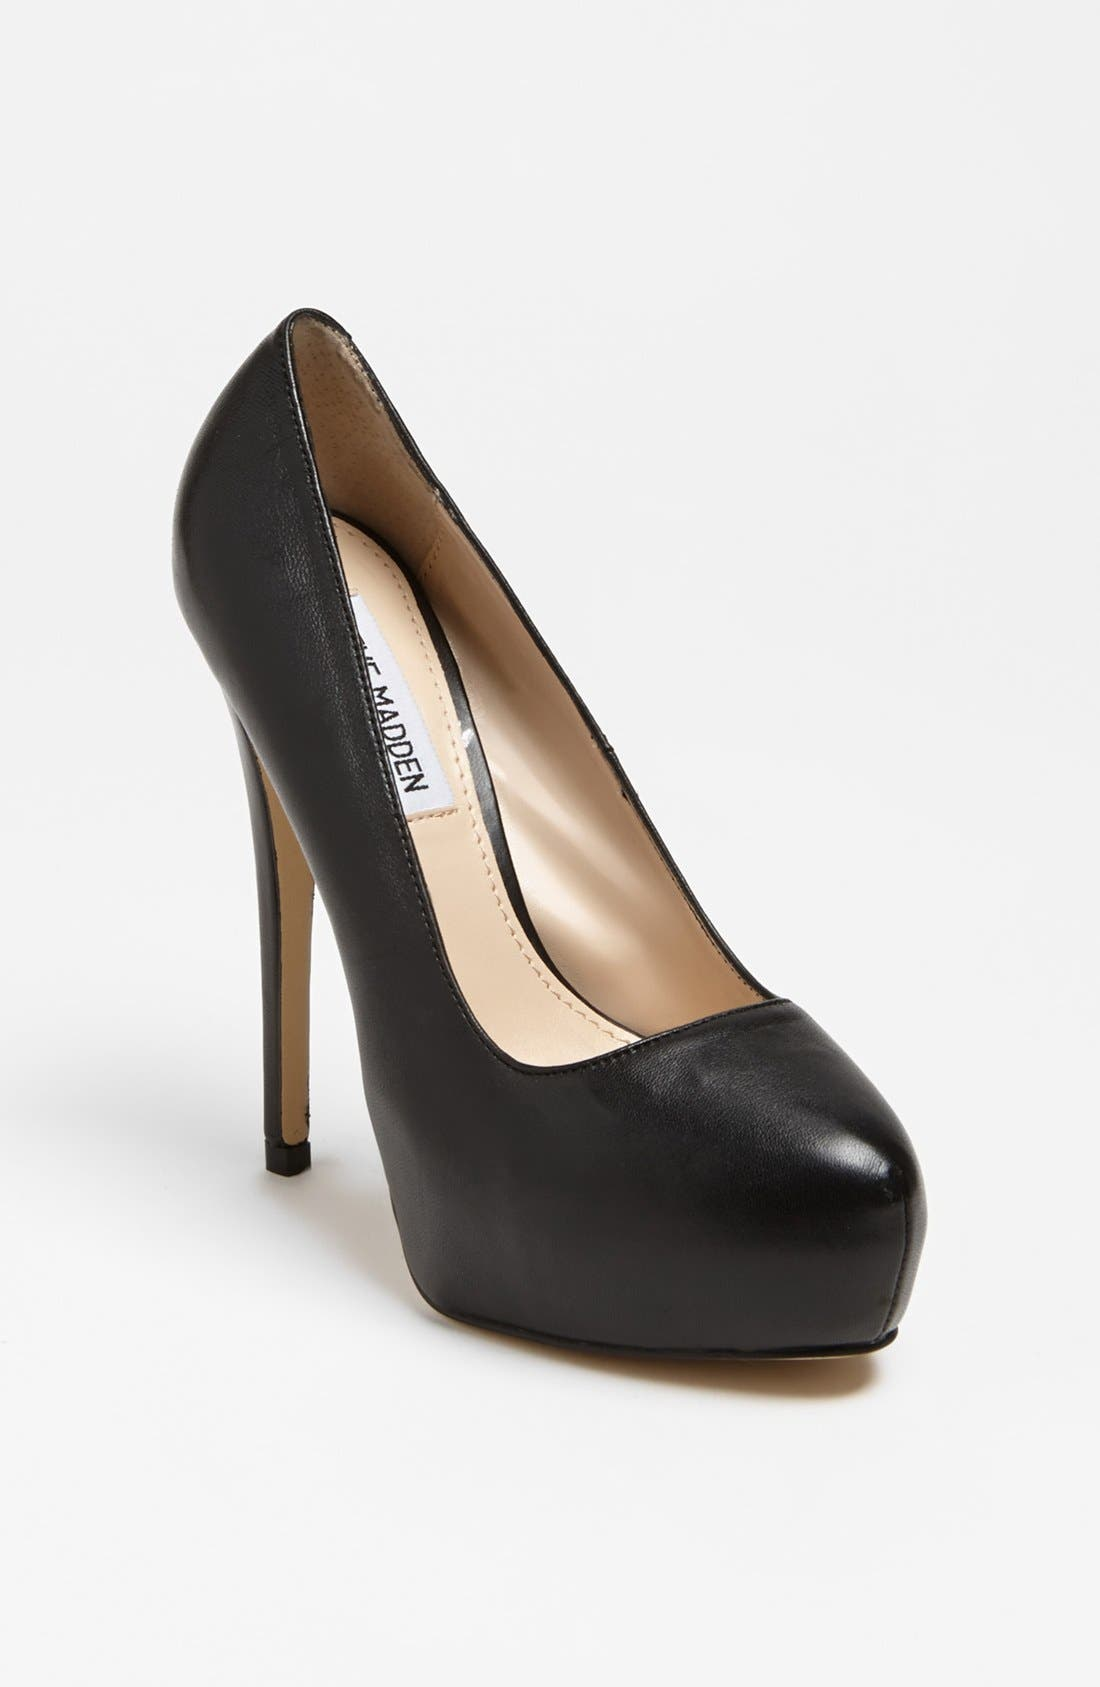 Alternate Image 1 Selected - Steve Madden 'Yasmin' Pump